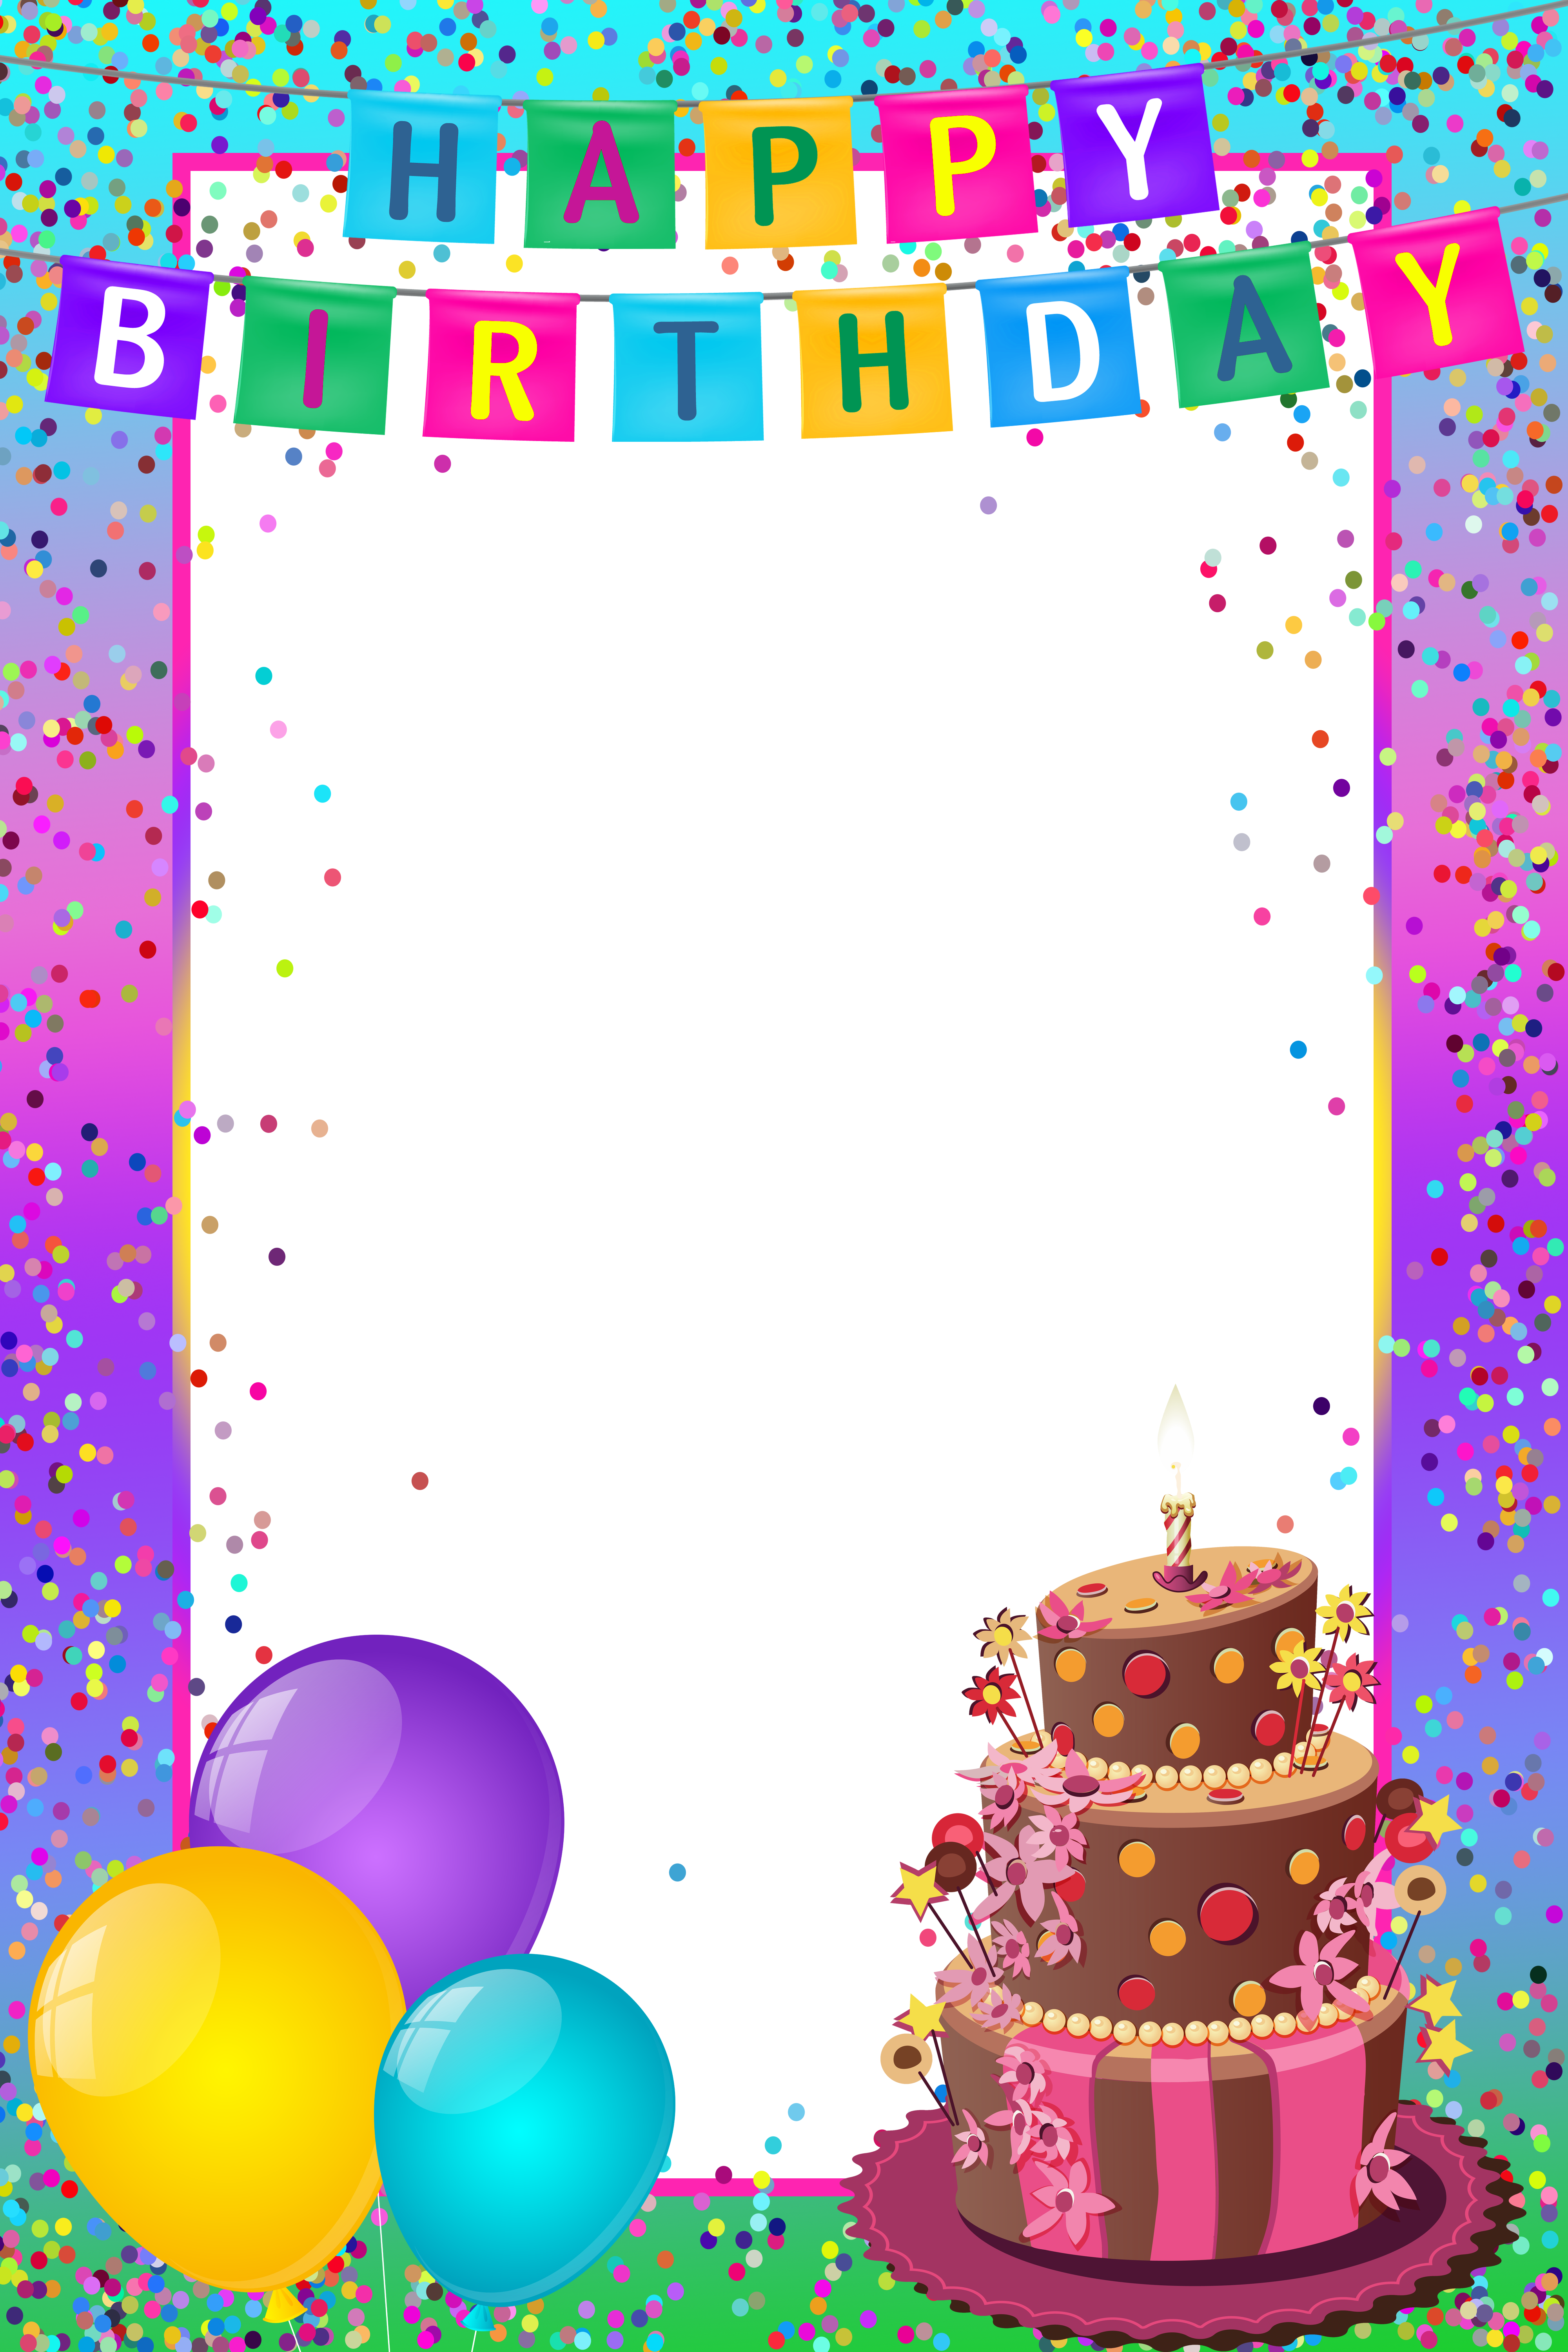 Happy birthday frames png. Transparent multicolor frame gallery